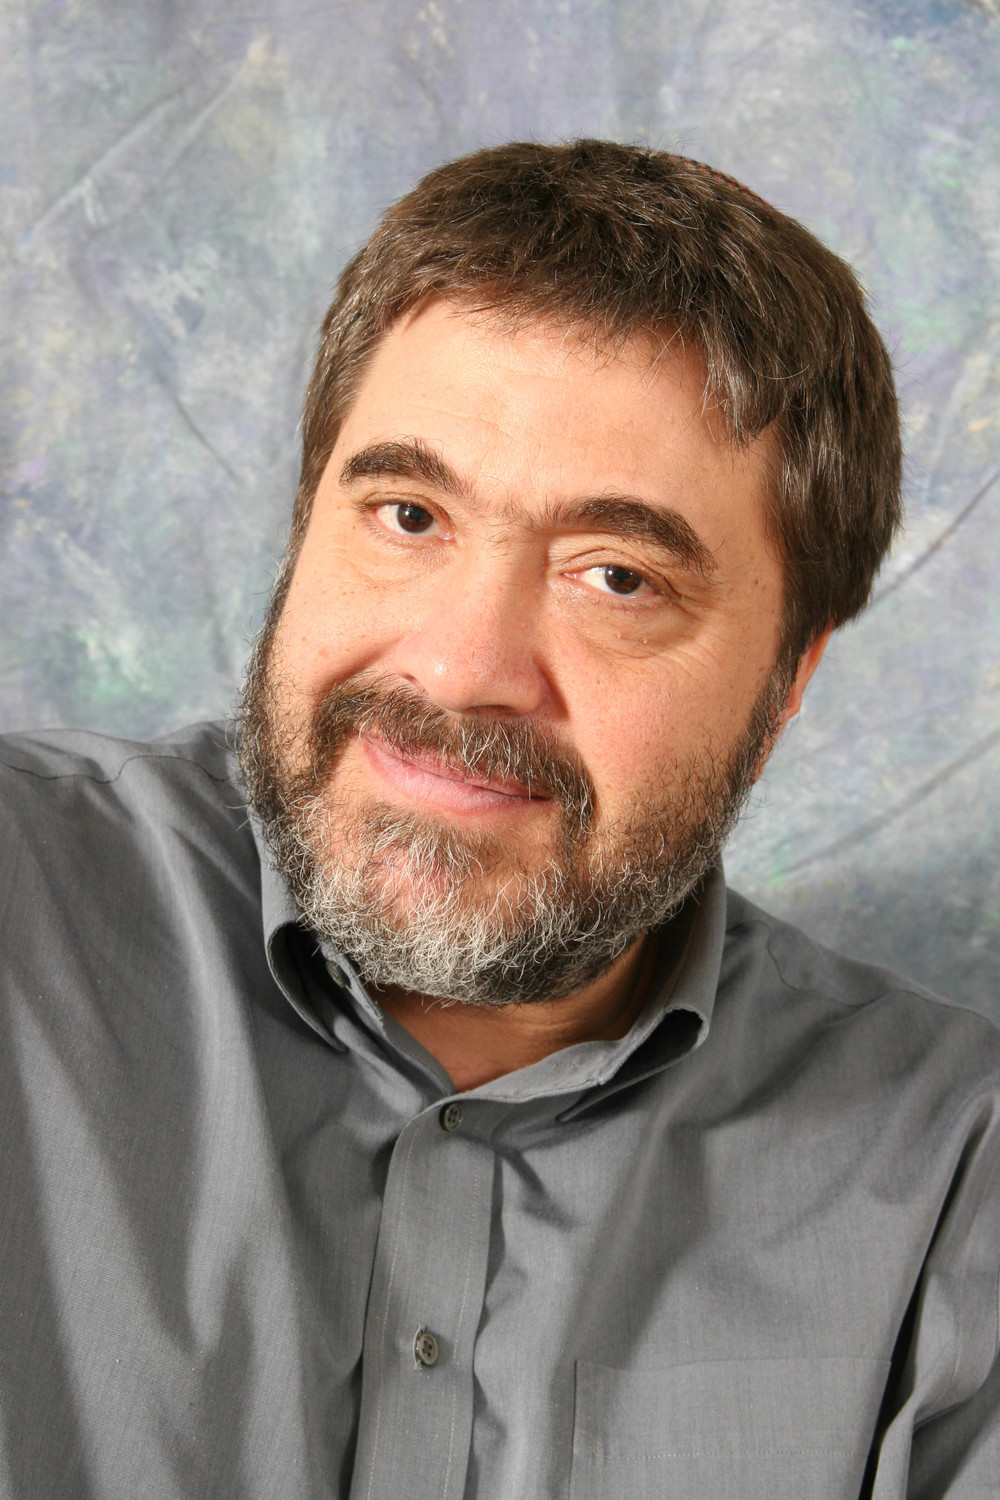 Click photo to download. Caption: OurCrowd founder Jonathan Medved. Credit: OurCrowd.